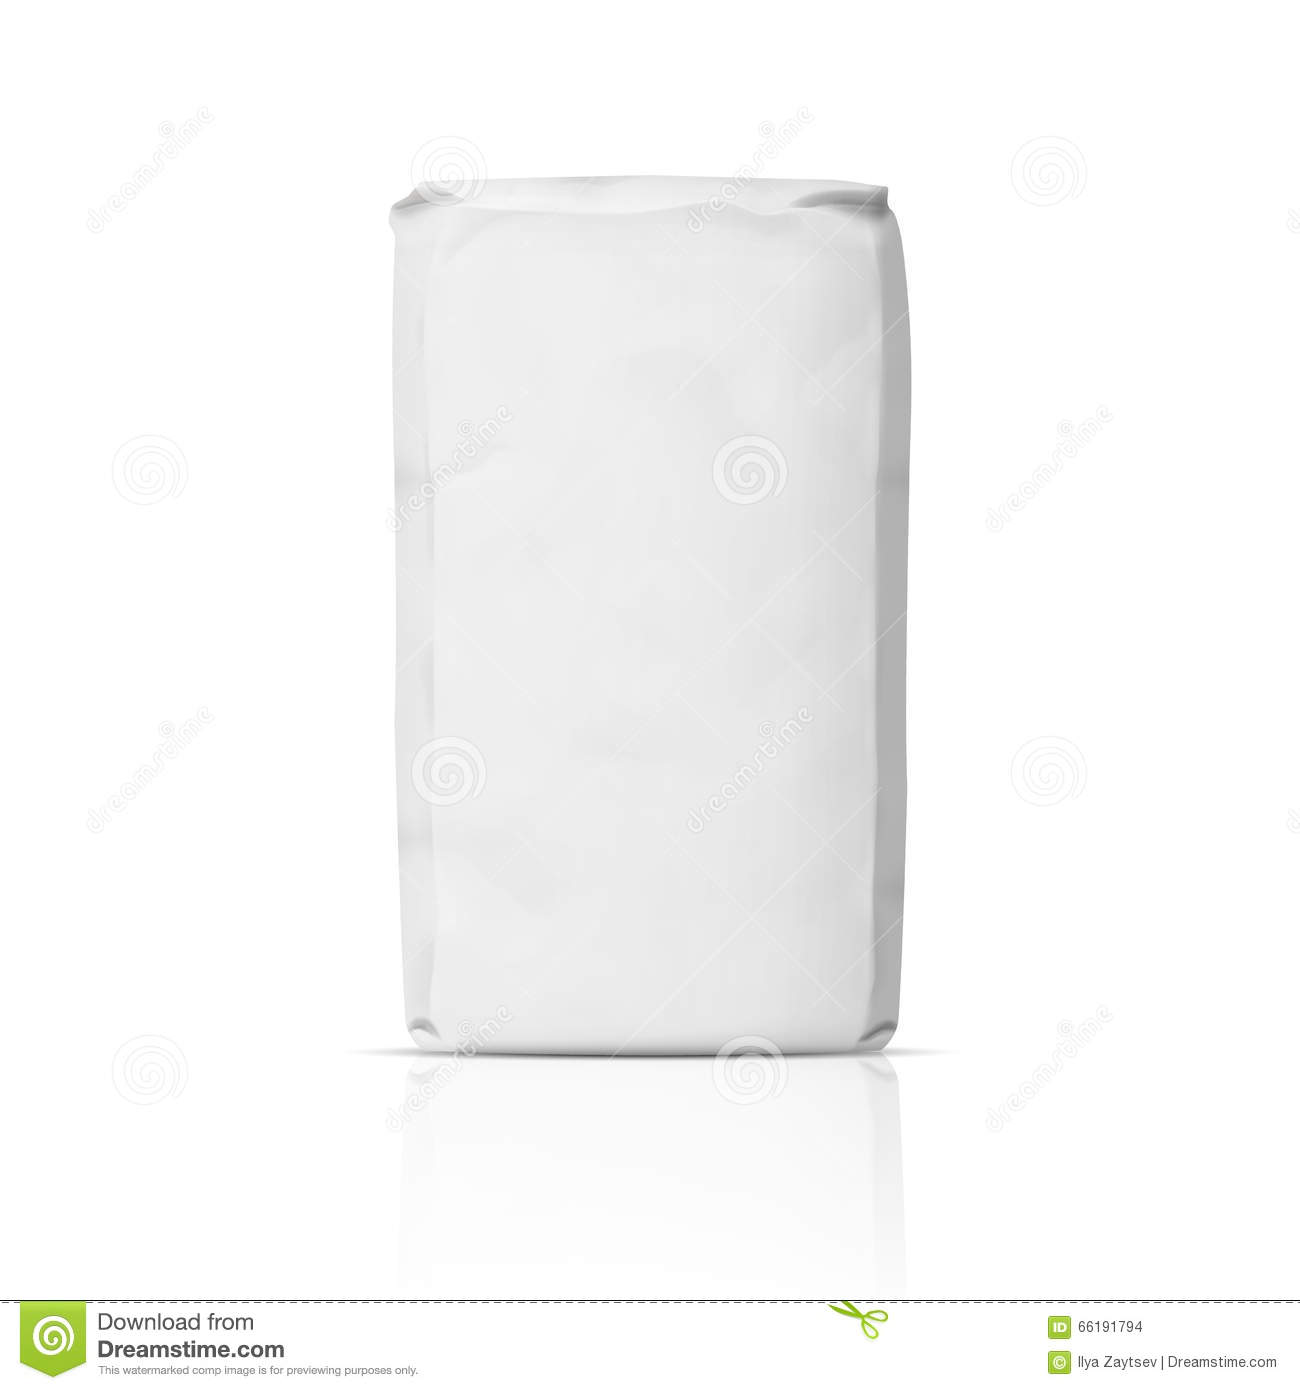 Blank paper flour bag. stock vector. Image of container ...White Paper Bag Vector